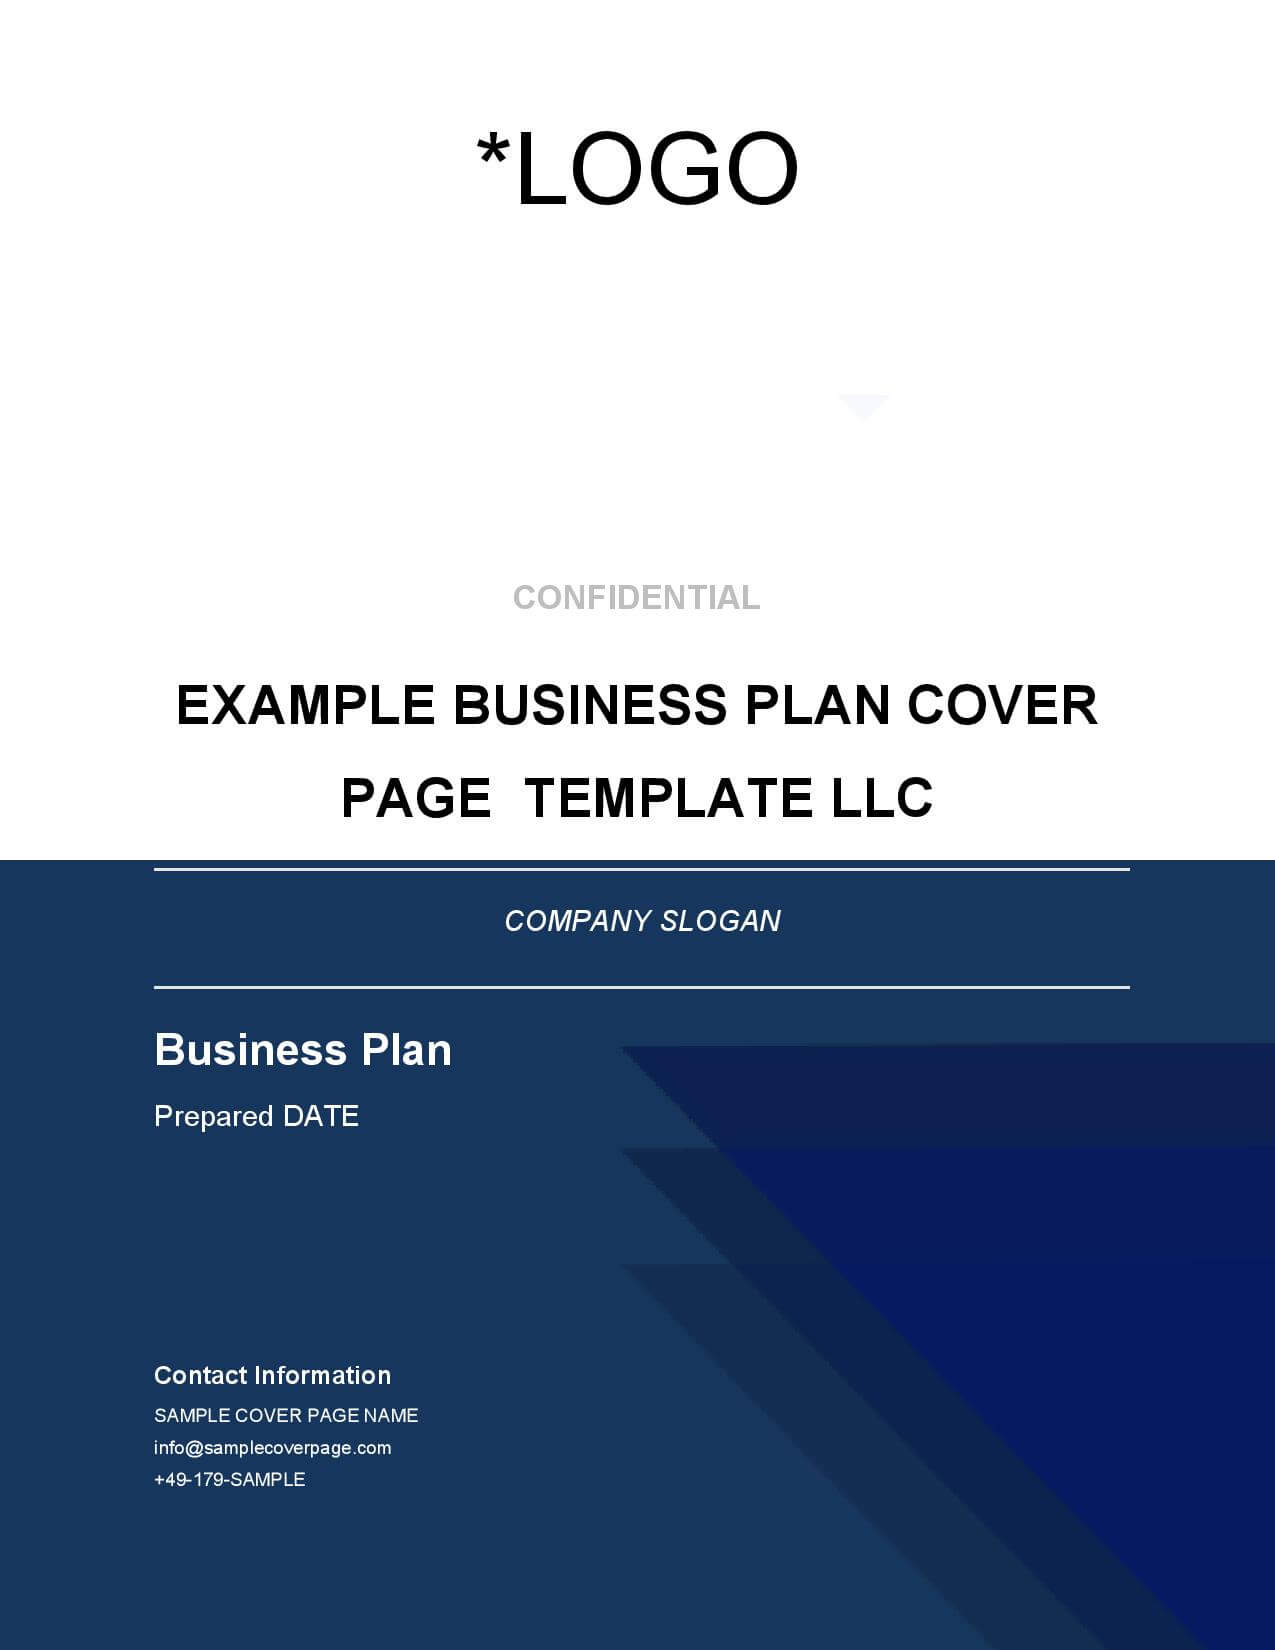 business plan cover page Use a business plan template to create your business plan by adding the detailed information behind the pitch deck and executive summary outline to attract investors a business plan should include the following: 1 cover page: include the company's name, contact information and company logo 2 .